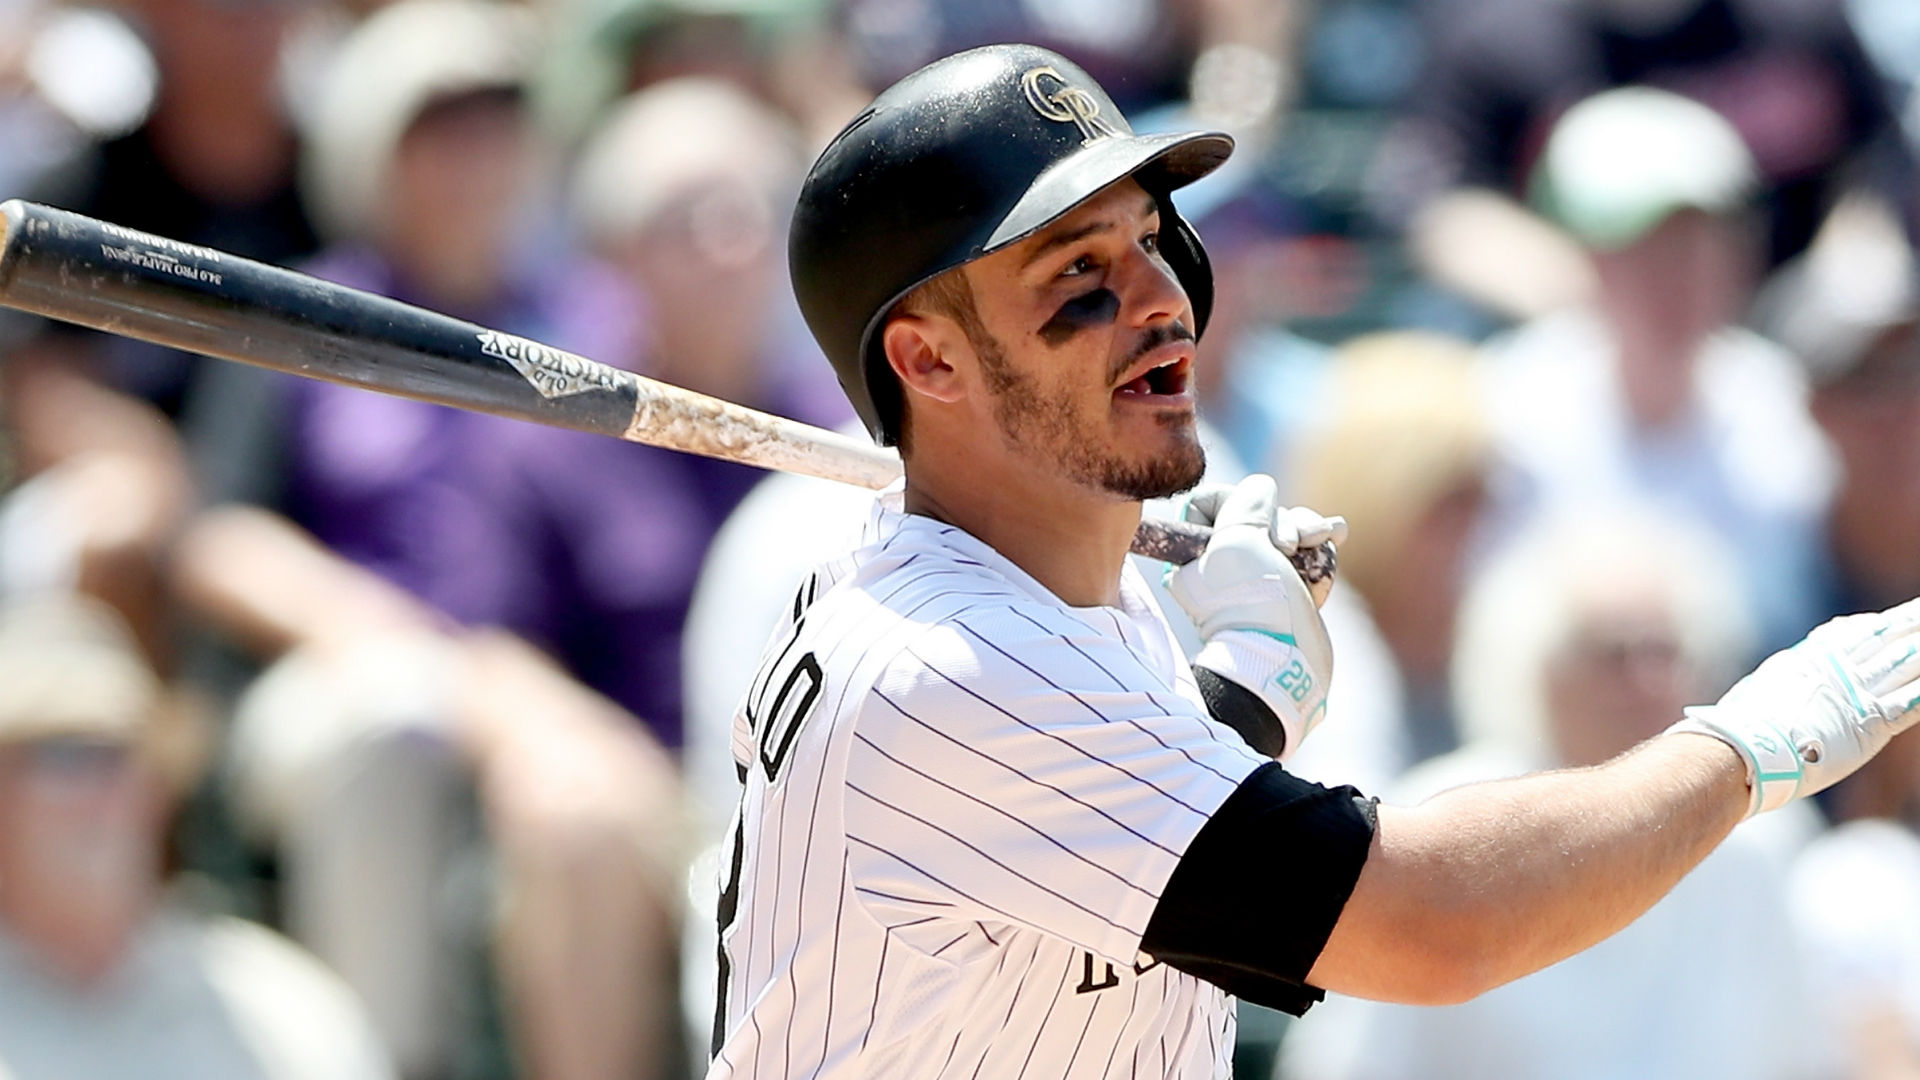 (Colo)-Arenado Hits Walkoff Homer To Complete The Cycle